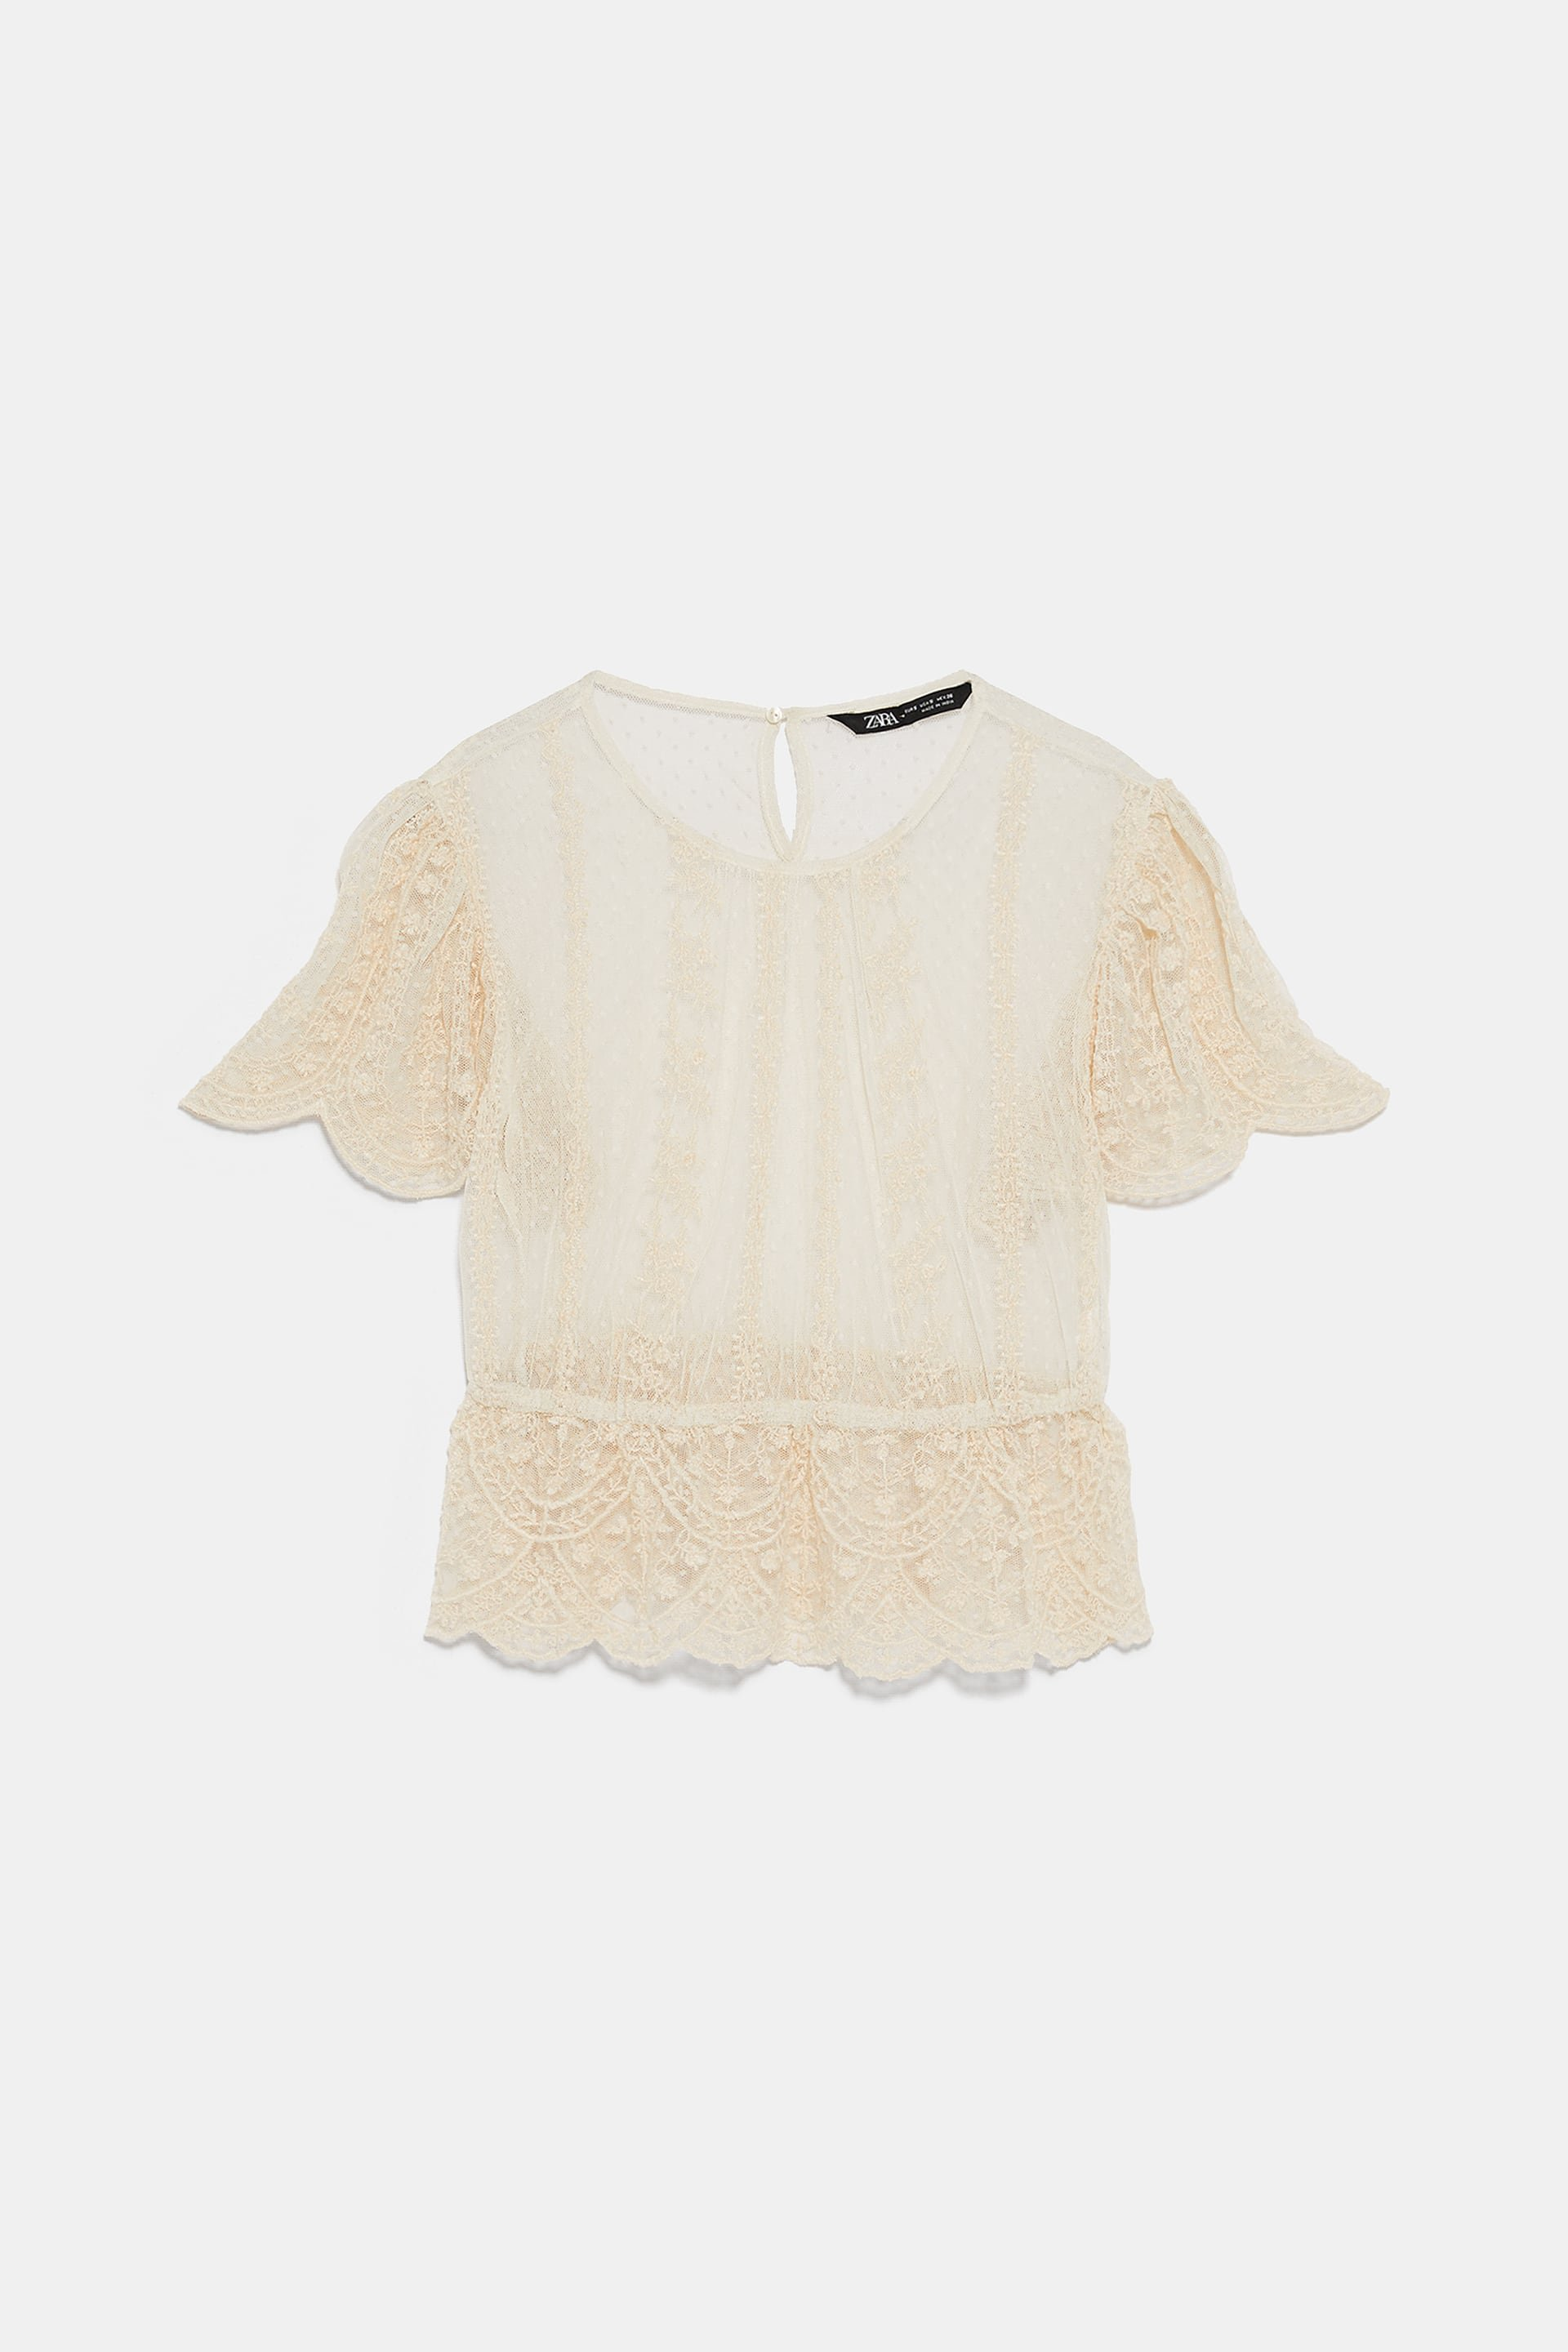 EMBROIDERED TULLE TOP - View All-SHIRTS | BLOUSES-WOMAN | ZARA United States